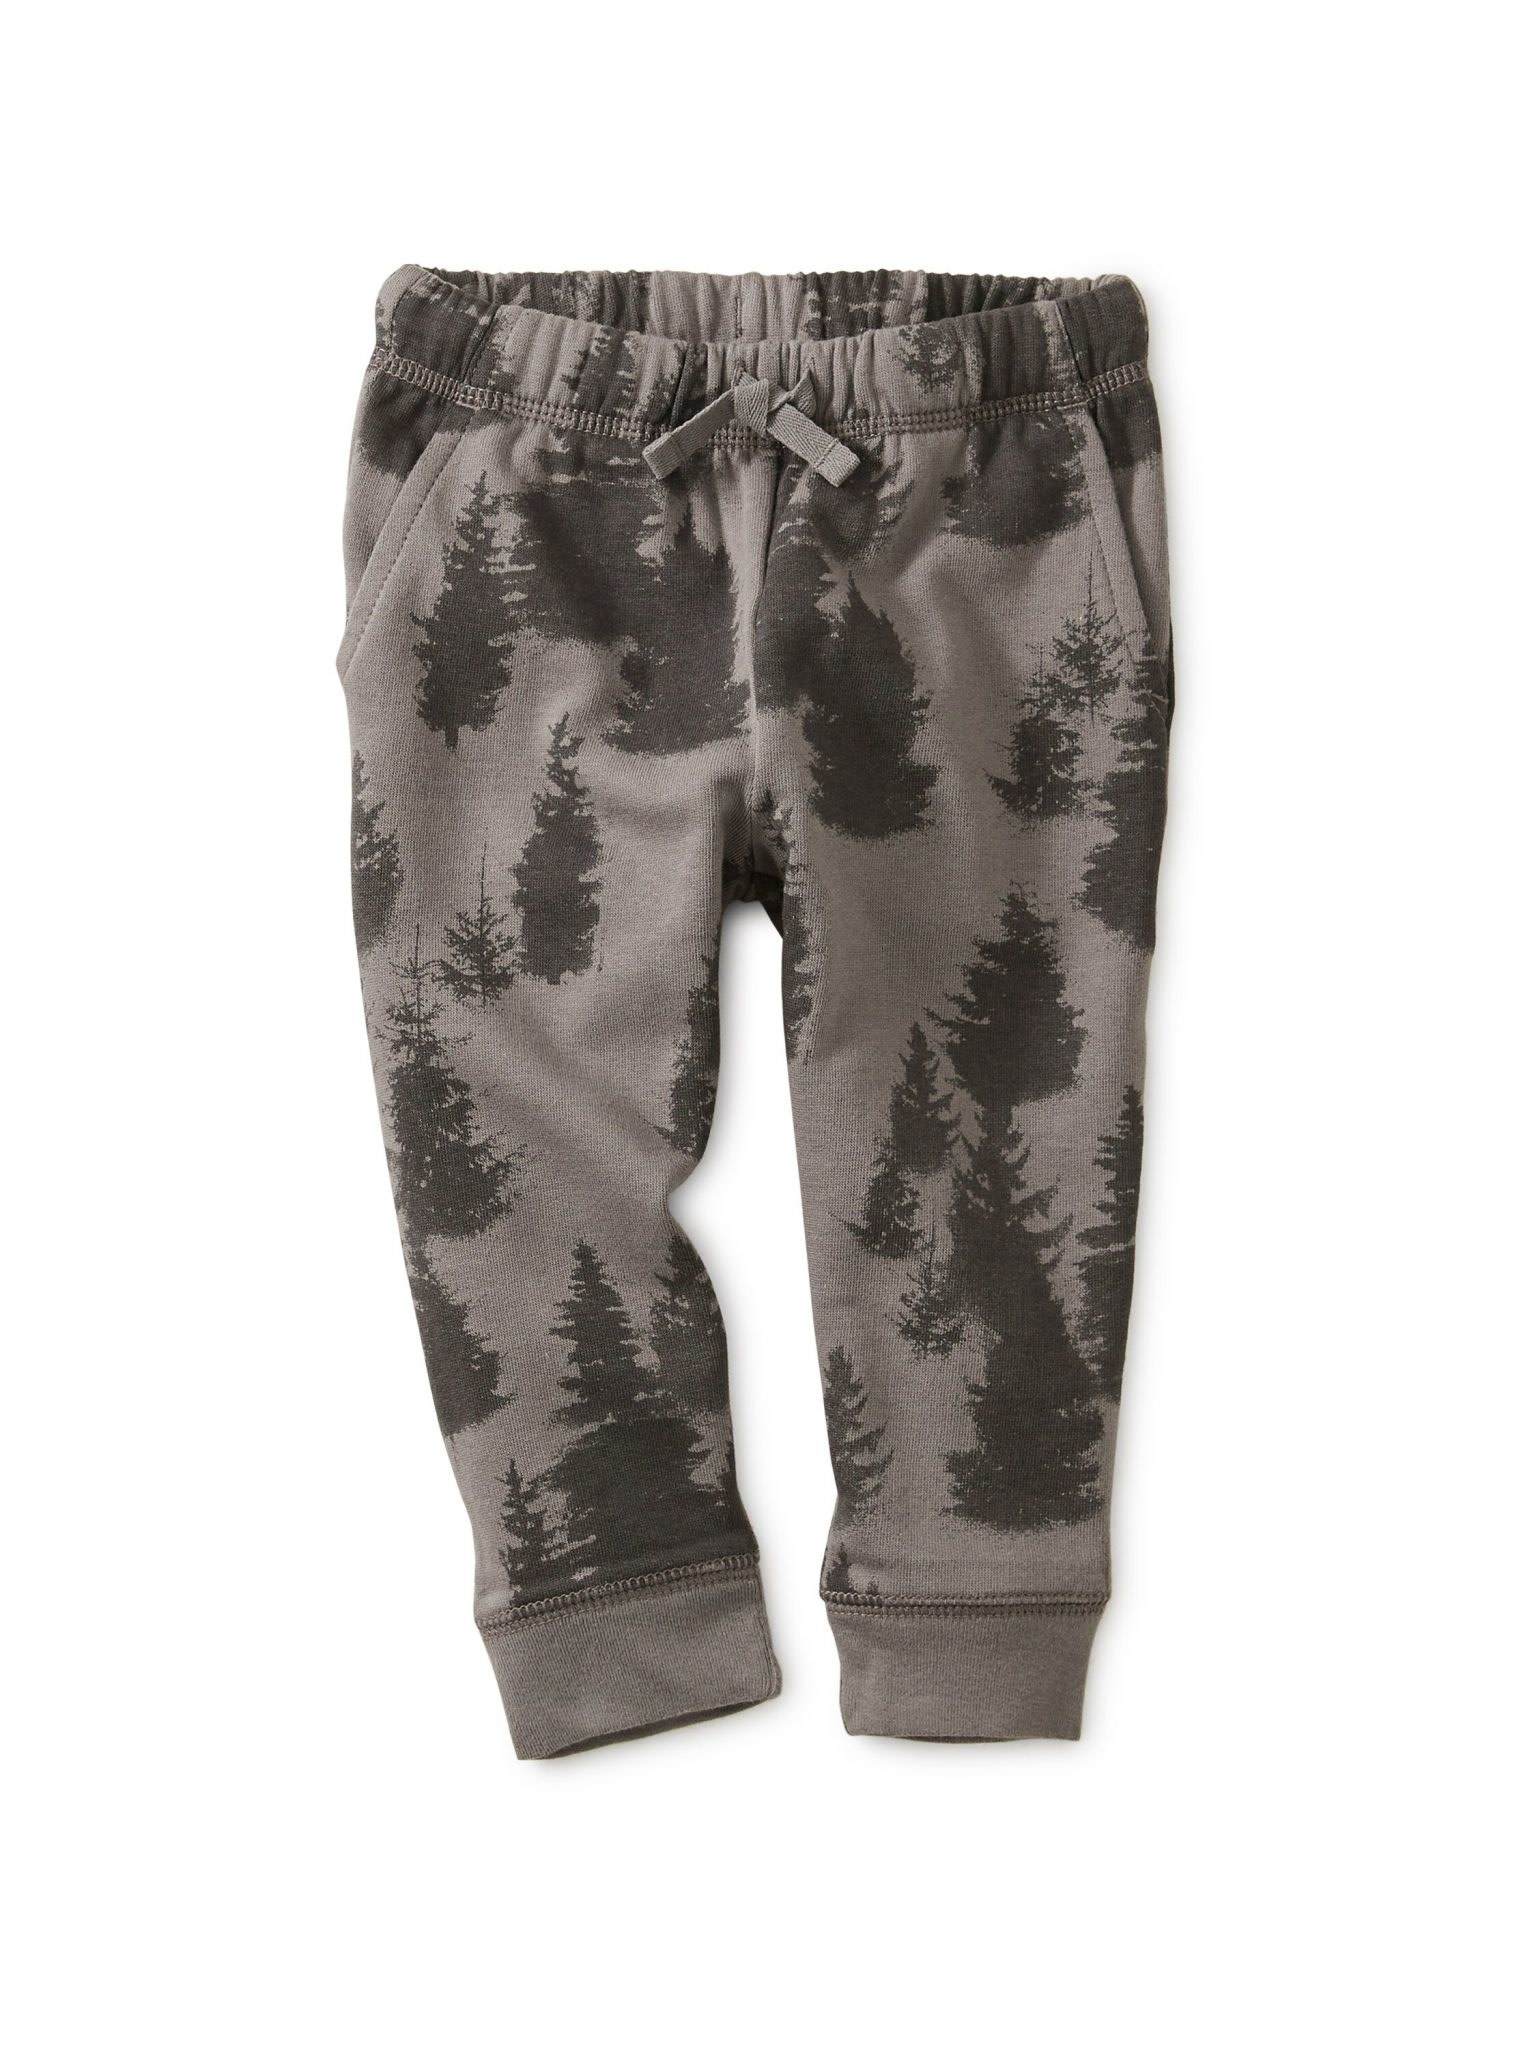 Tea Collection Forest Fleece Baby Joggers - Forest  6-9M